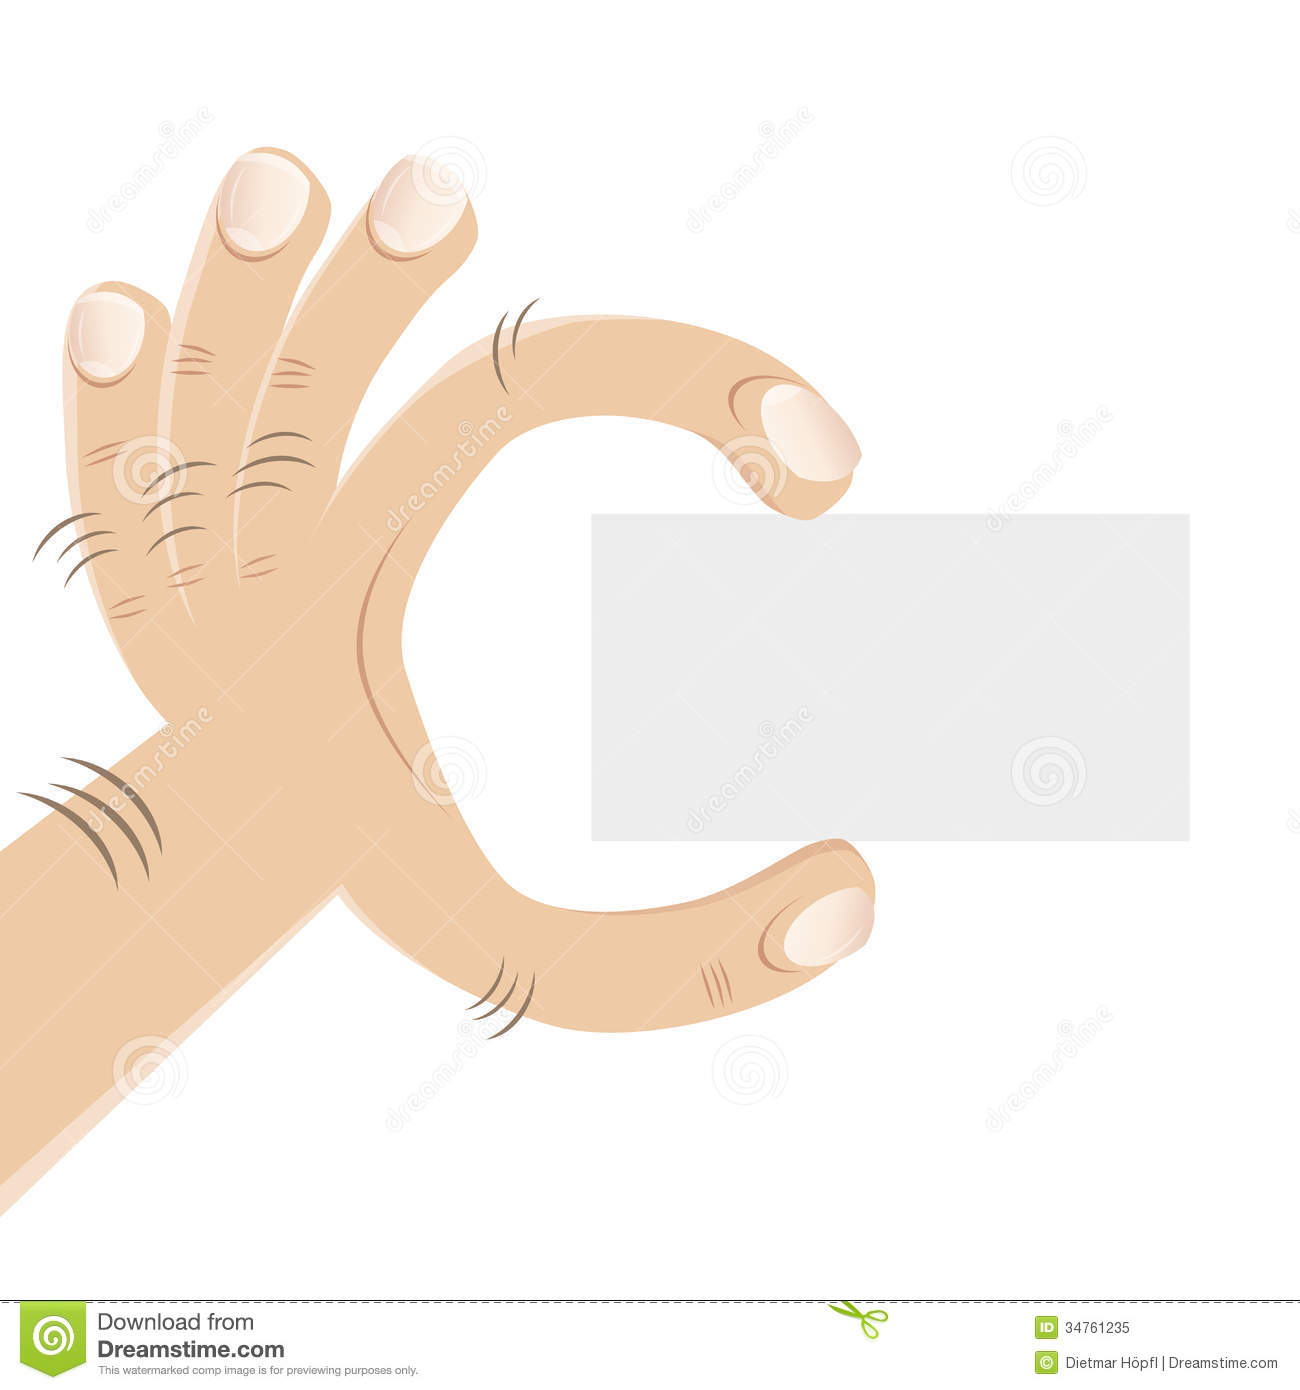 Hand Showing Empty Business Card Stock Vector - Illustration: 34761235